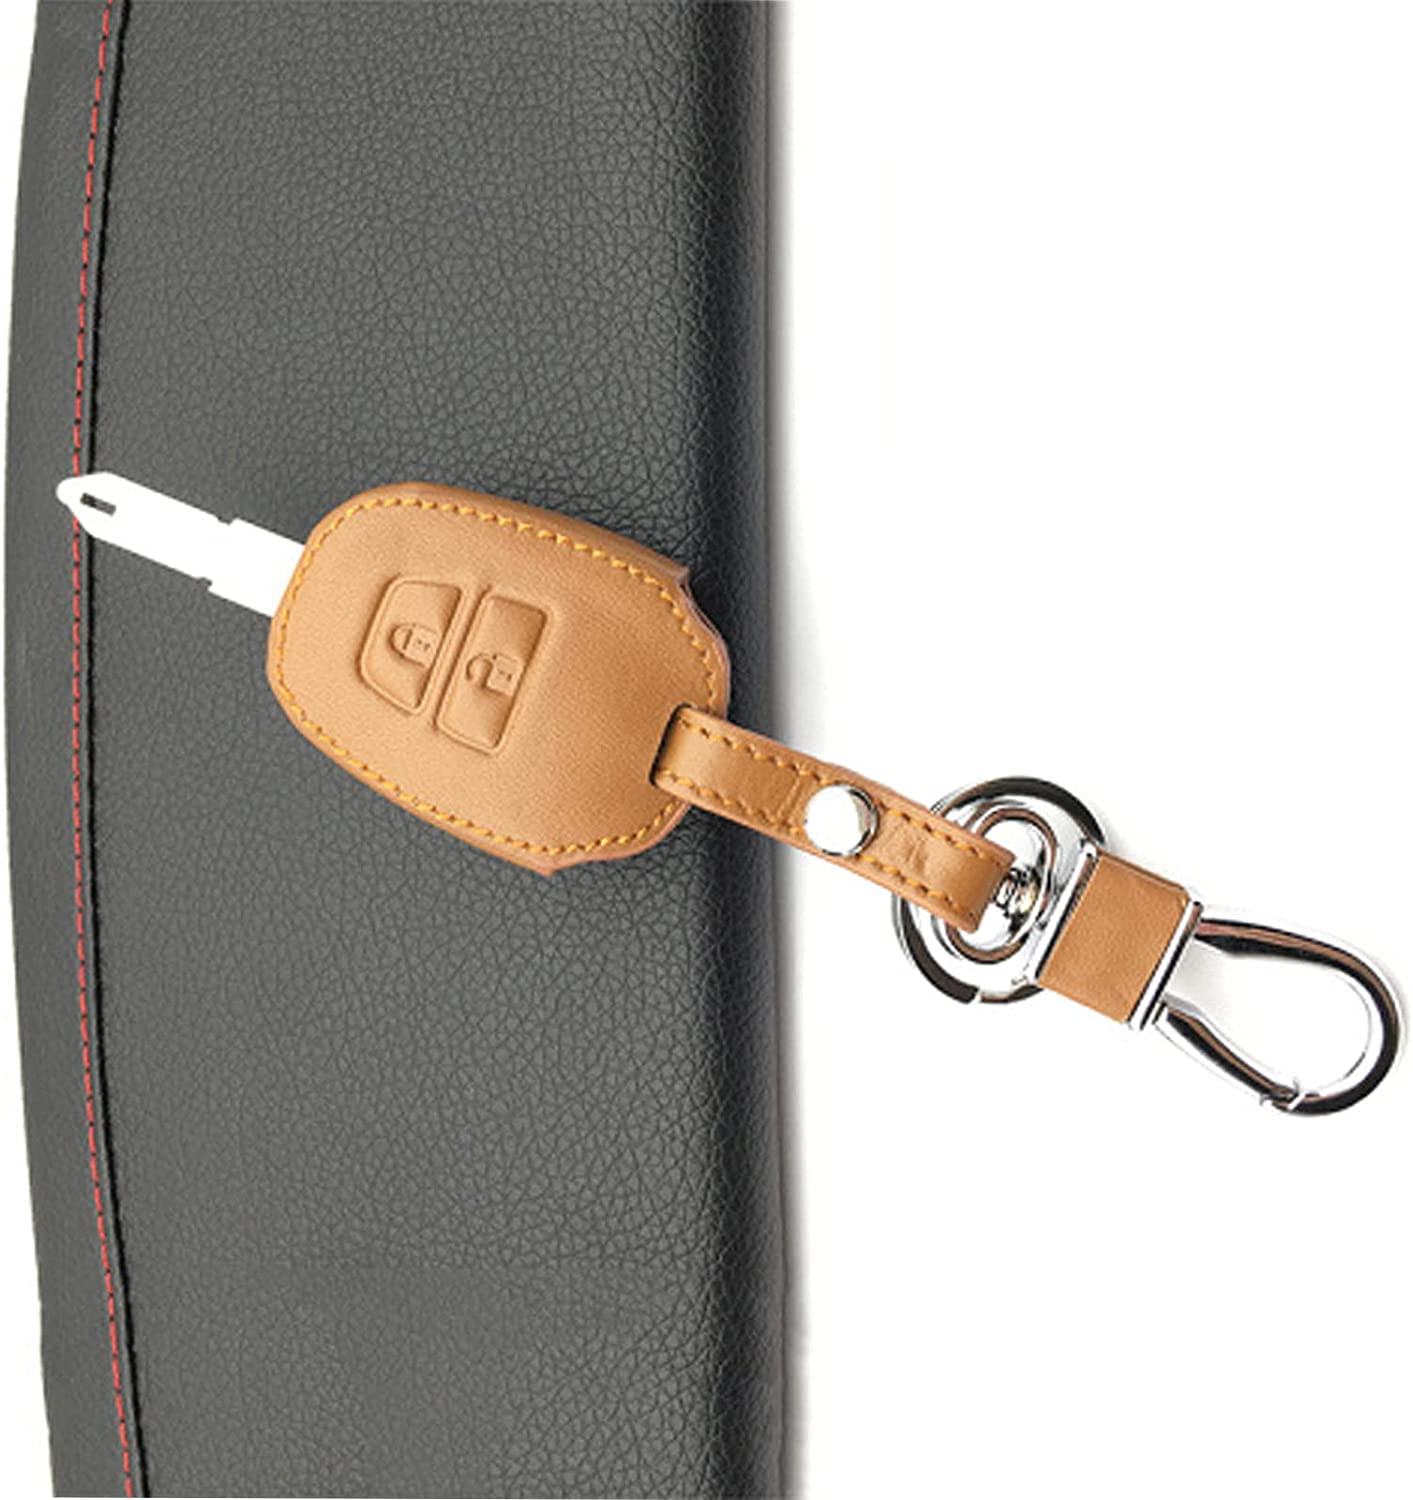 QWIHJ Leather Smart Key Fob Cover Skin Limited time for free shipping Fit Yari Toyota OFFicial store